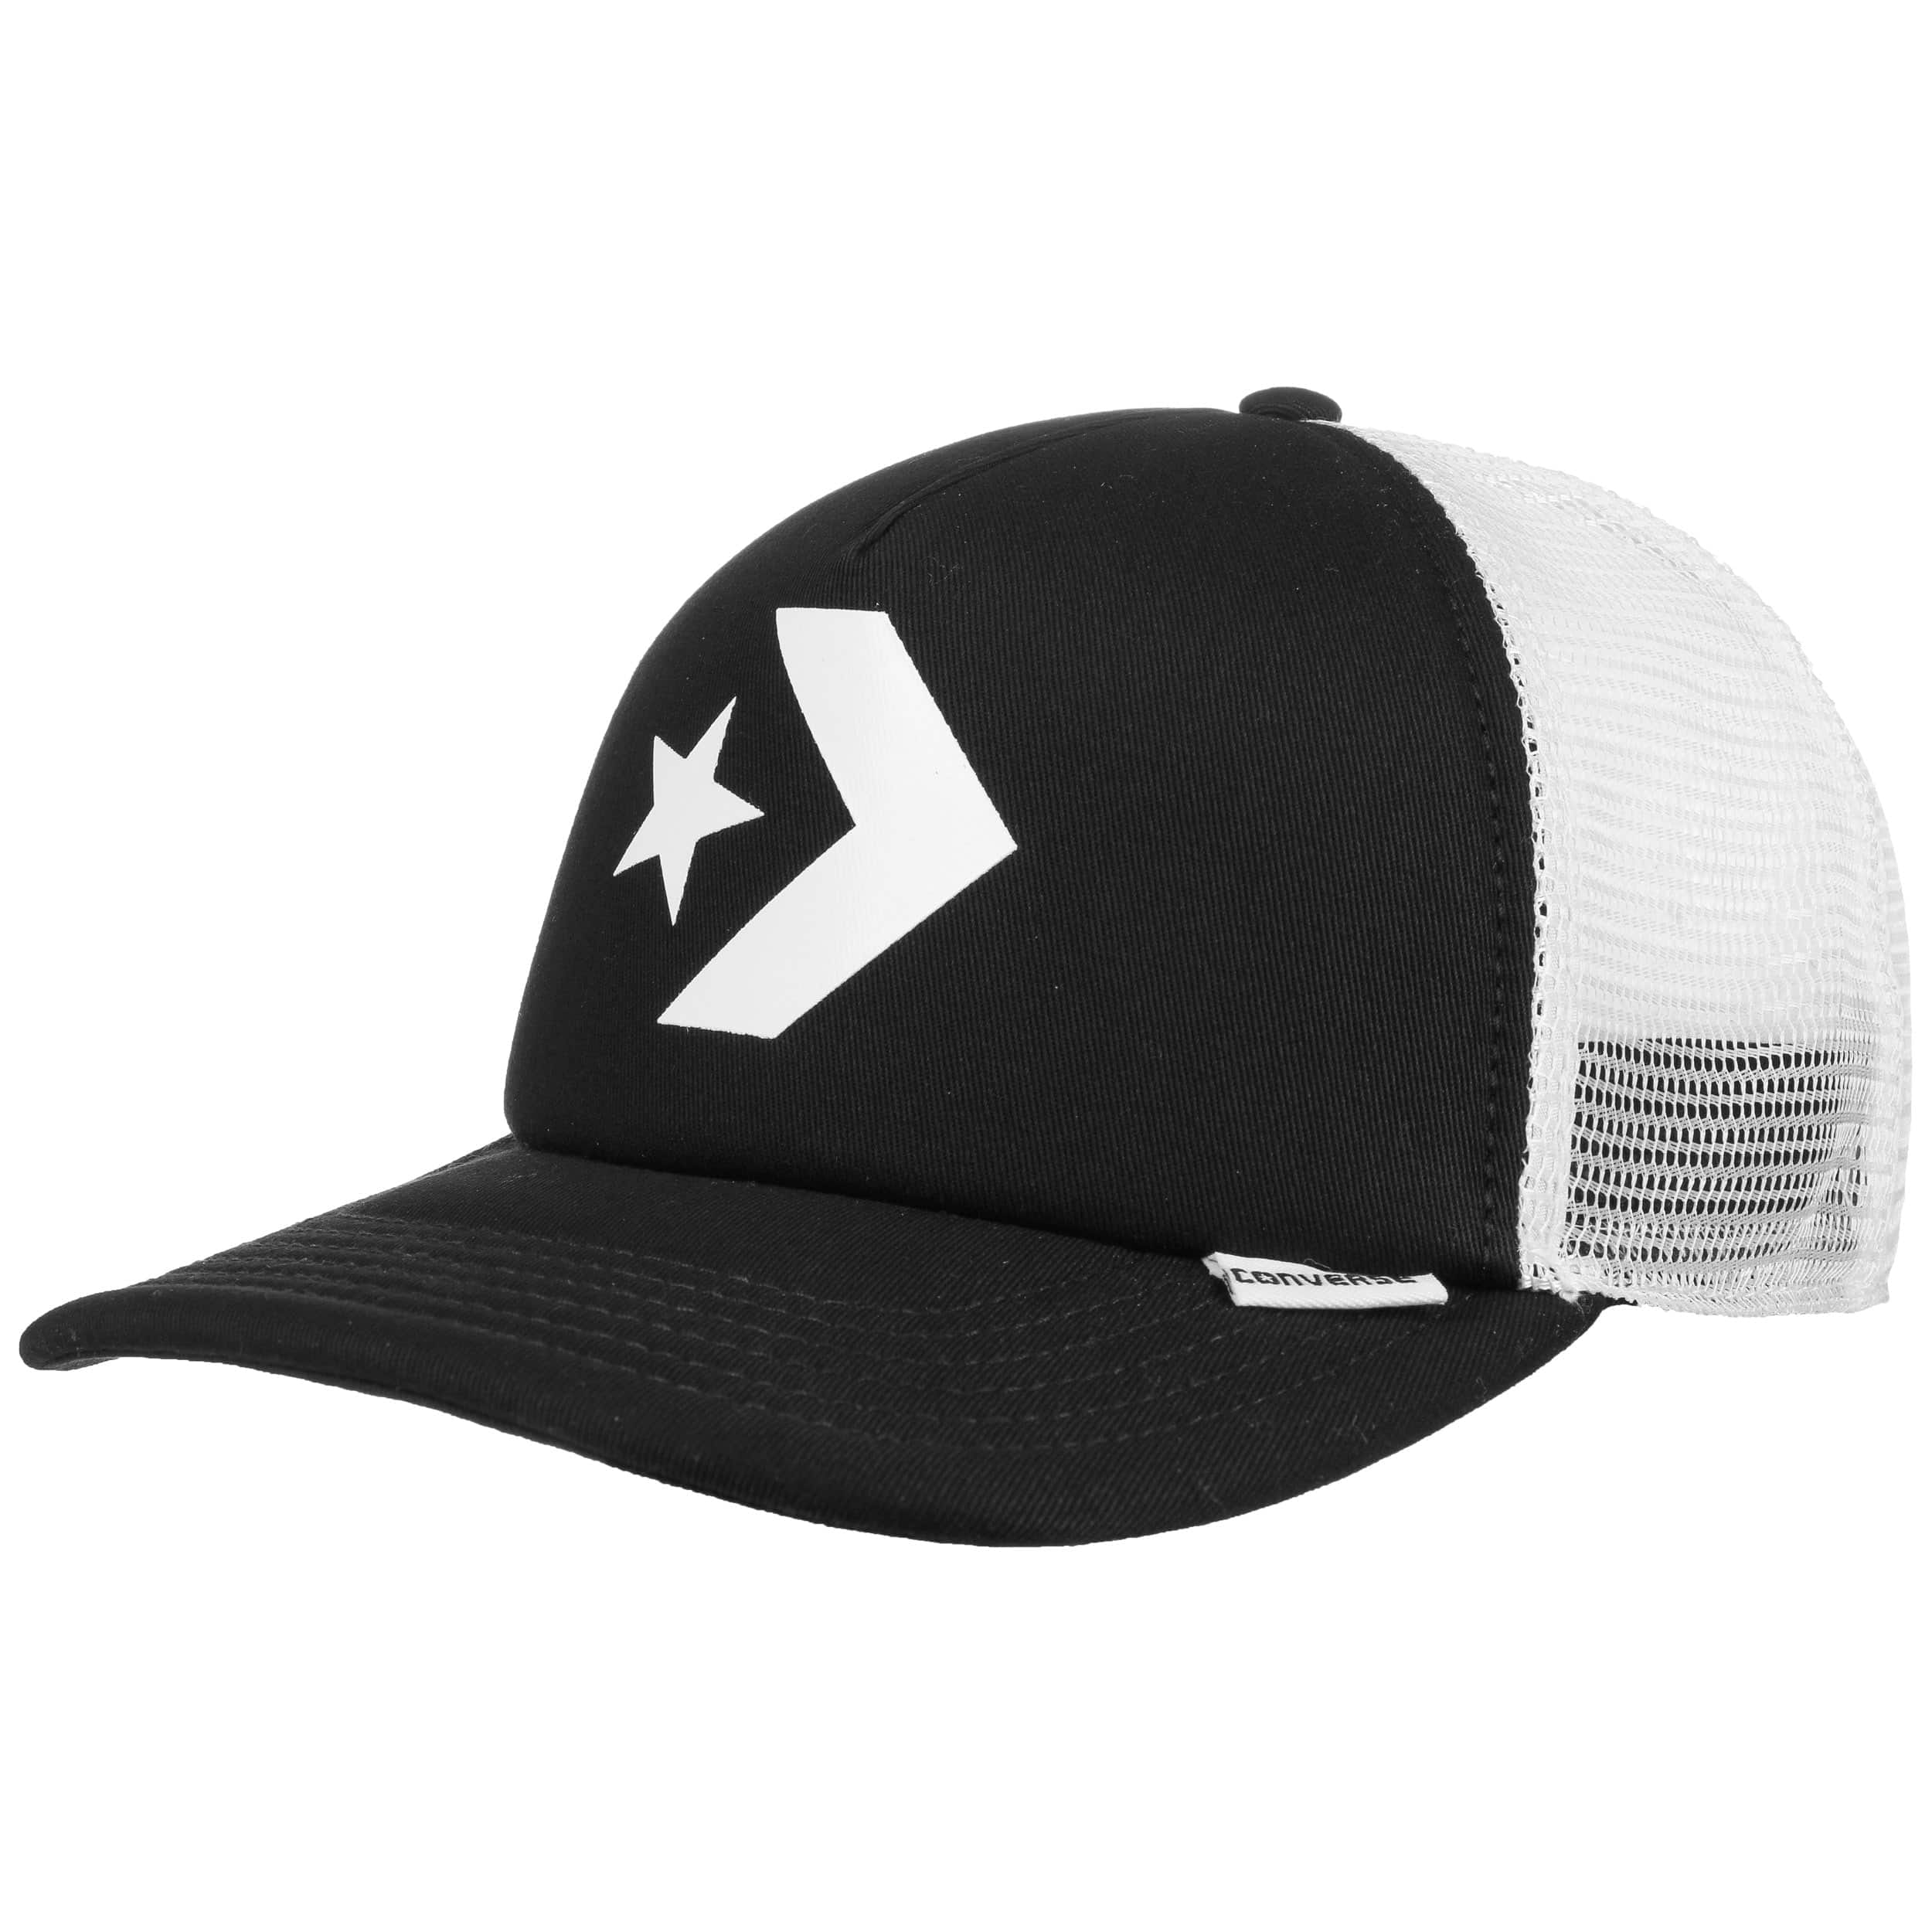 968193680f90b ... Star Chevron Flat Trucker Cap by Converse - black 5 ...